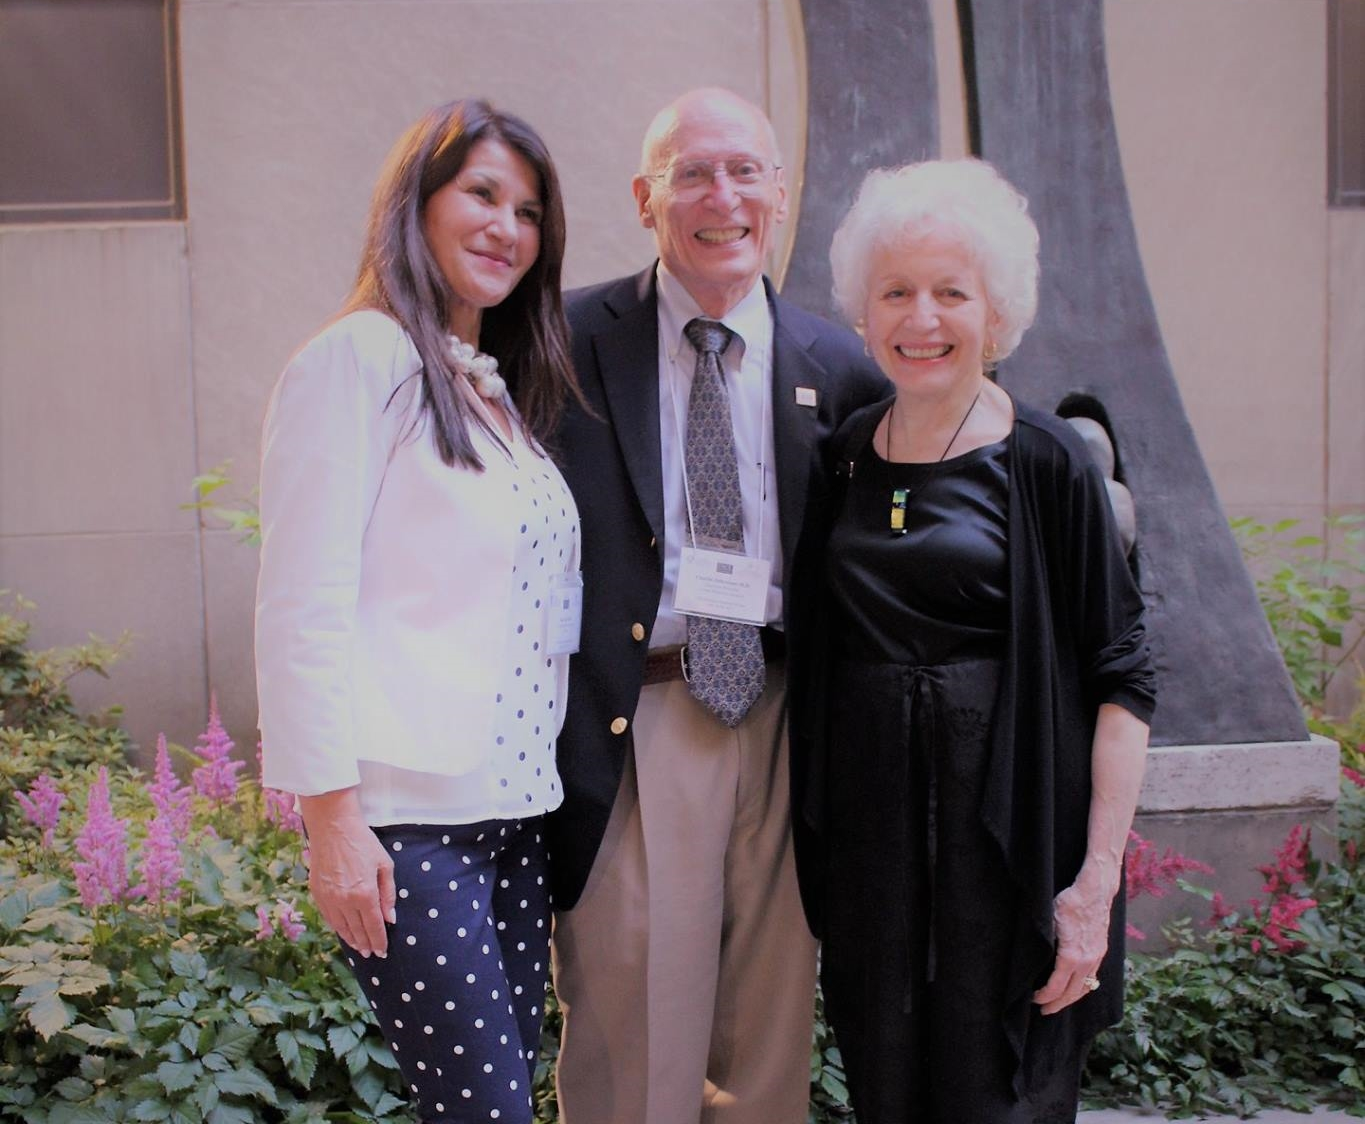 From left to right: Dr. Ana Lita, Dr. Charles Debrovner and Patricia Debrovner